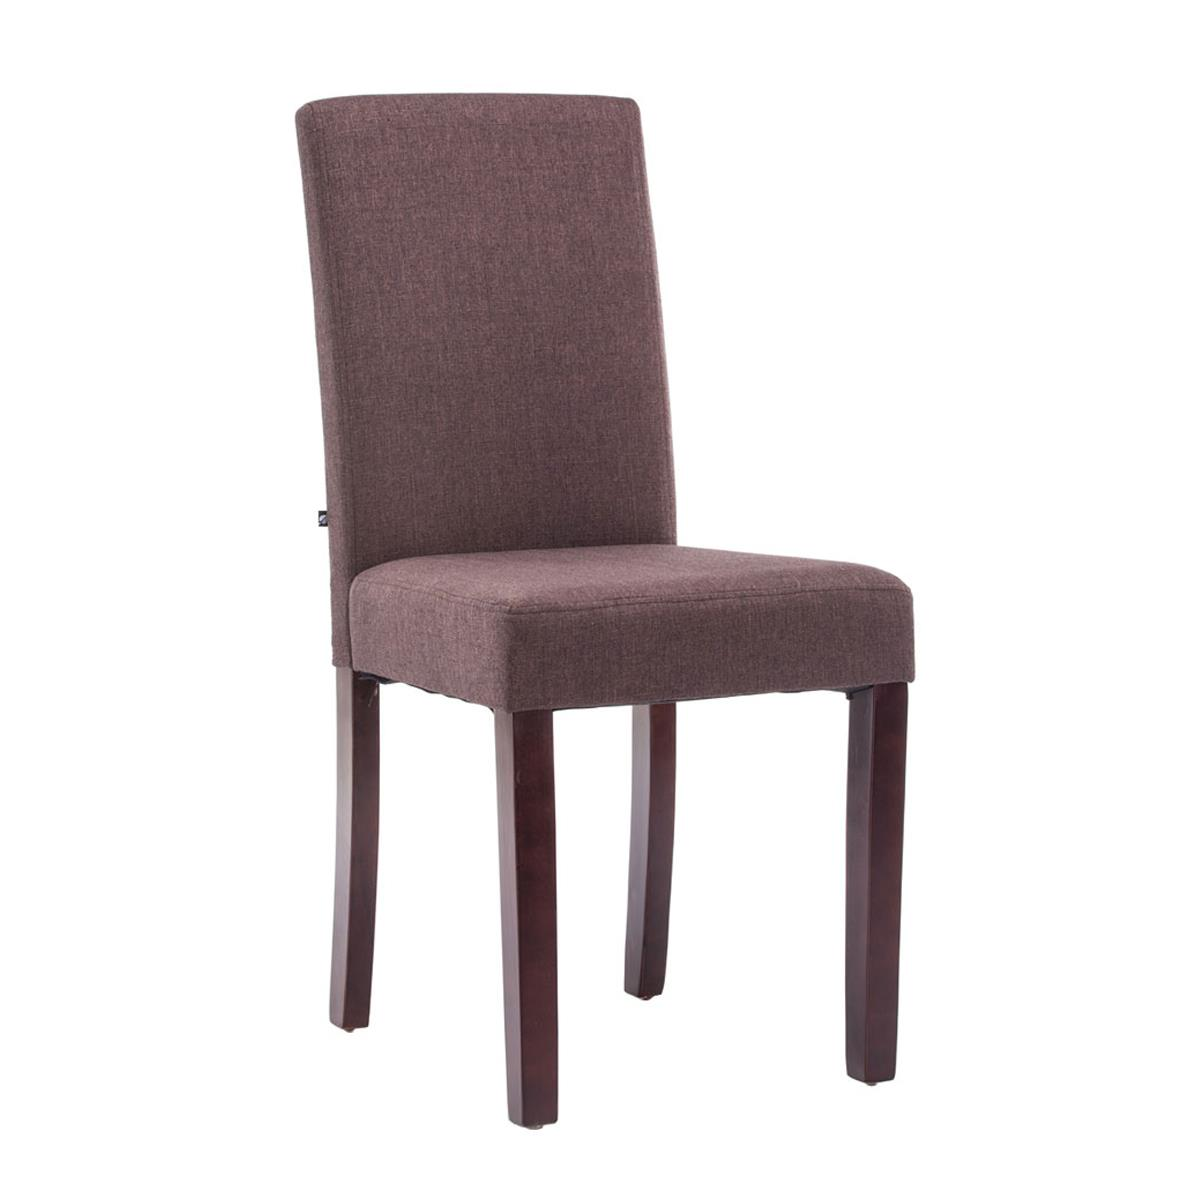 Silla de comedor adria tapizada en tela color marr n y for Sillas comedor marron chocolate